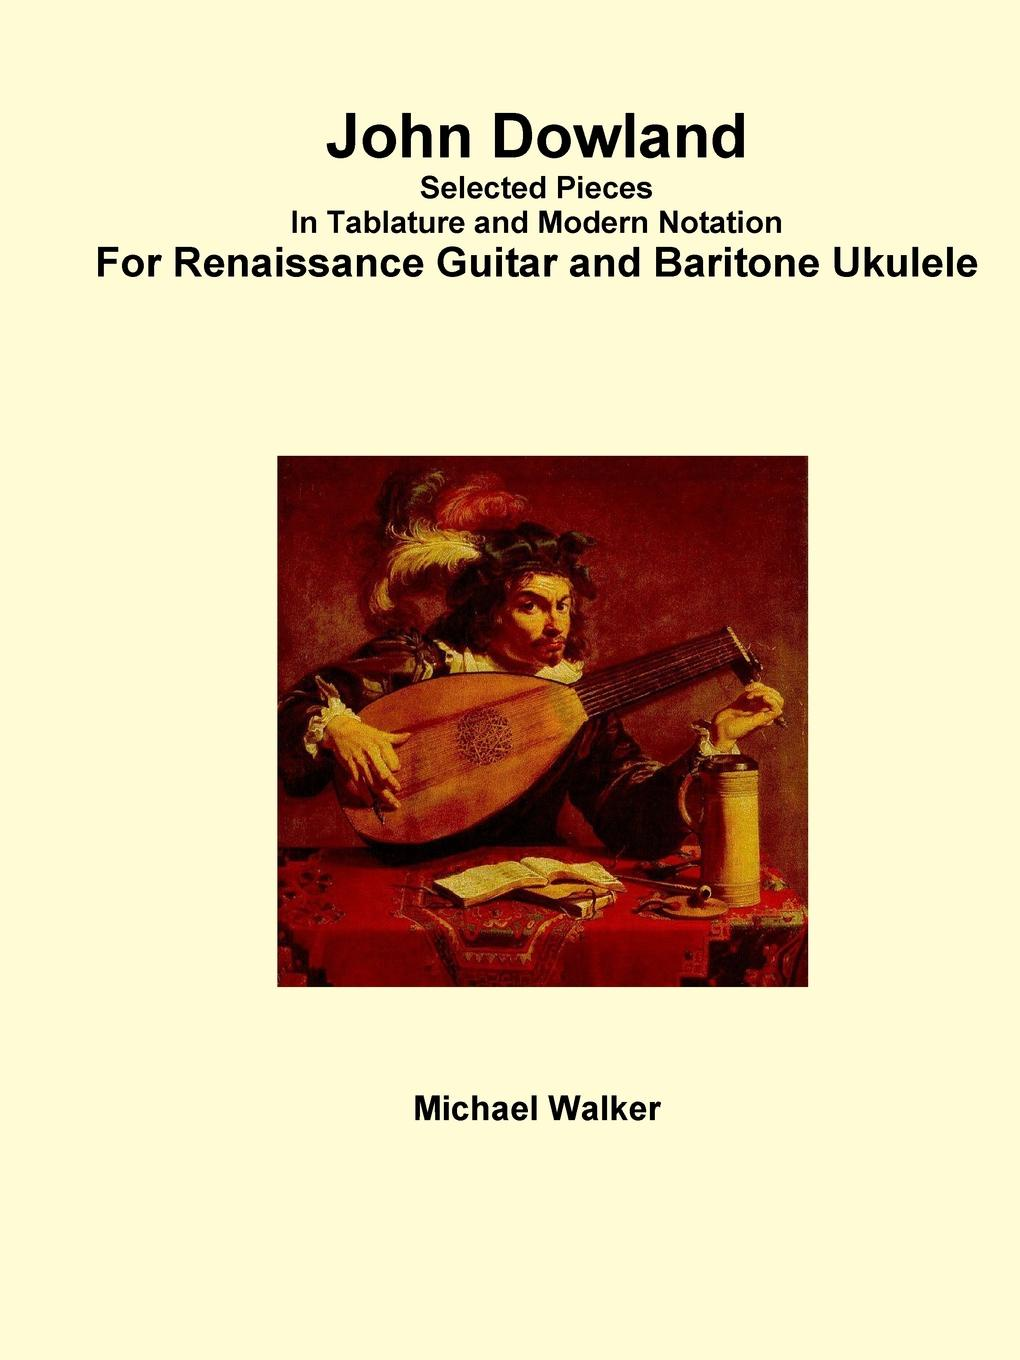 Michael Walker John Dowland Selected Pieces In Tablature and Modern Notation For Renaissance Guitar and Baritone Ukulele adjustable new brand lcd clip on electric tuner for guitar chromatic bass violin ukulele universal portable guitar tuner